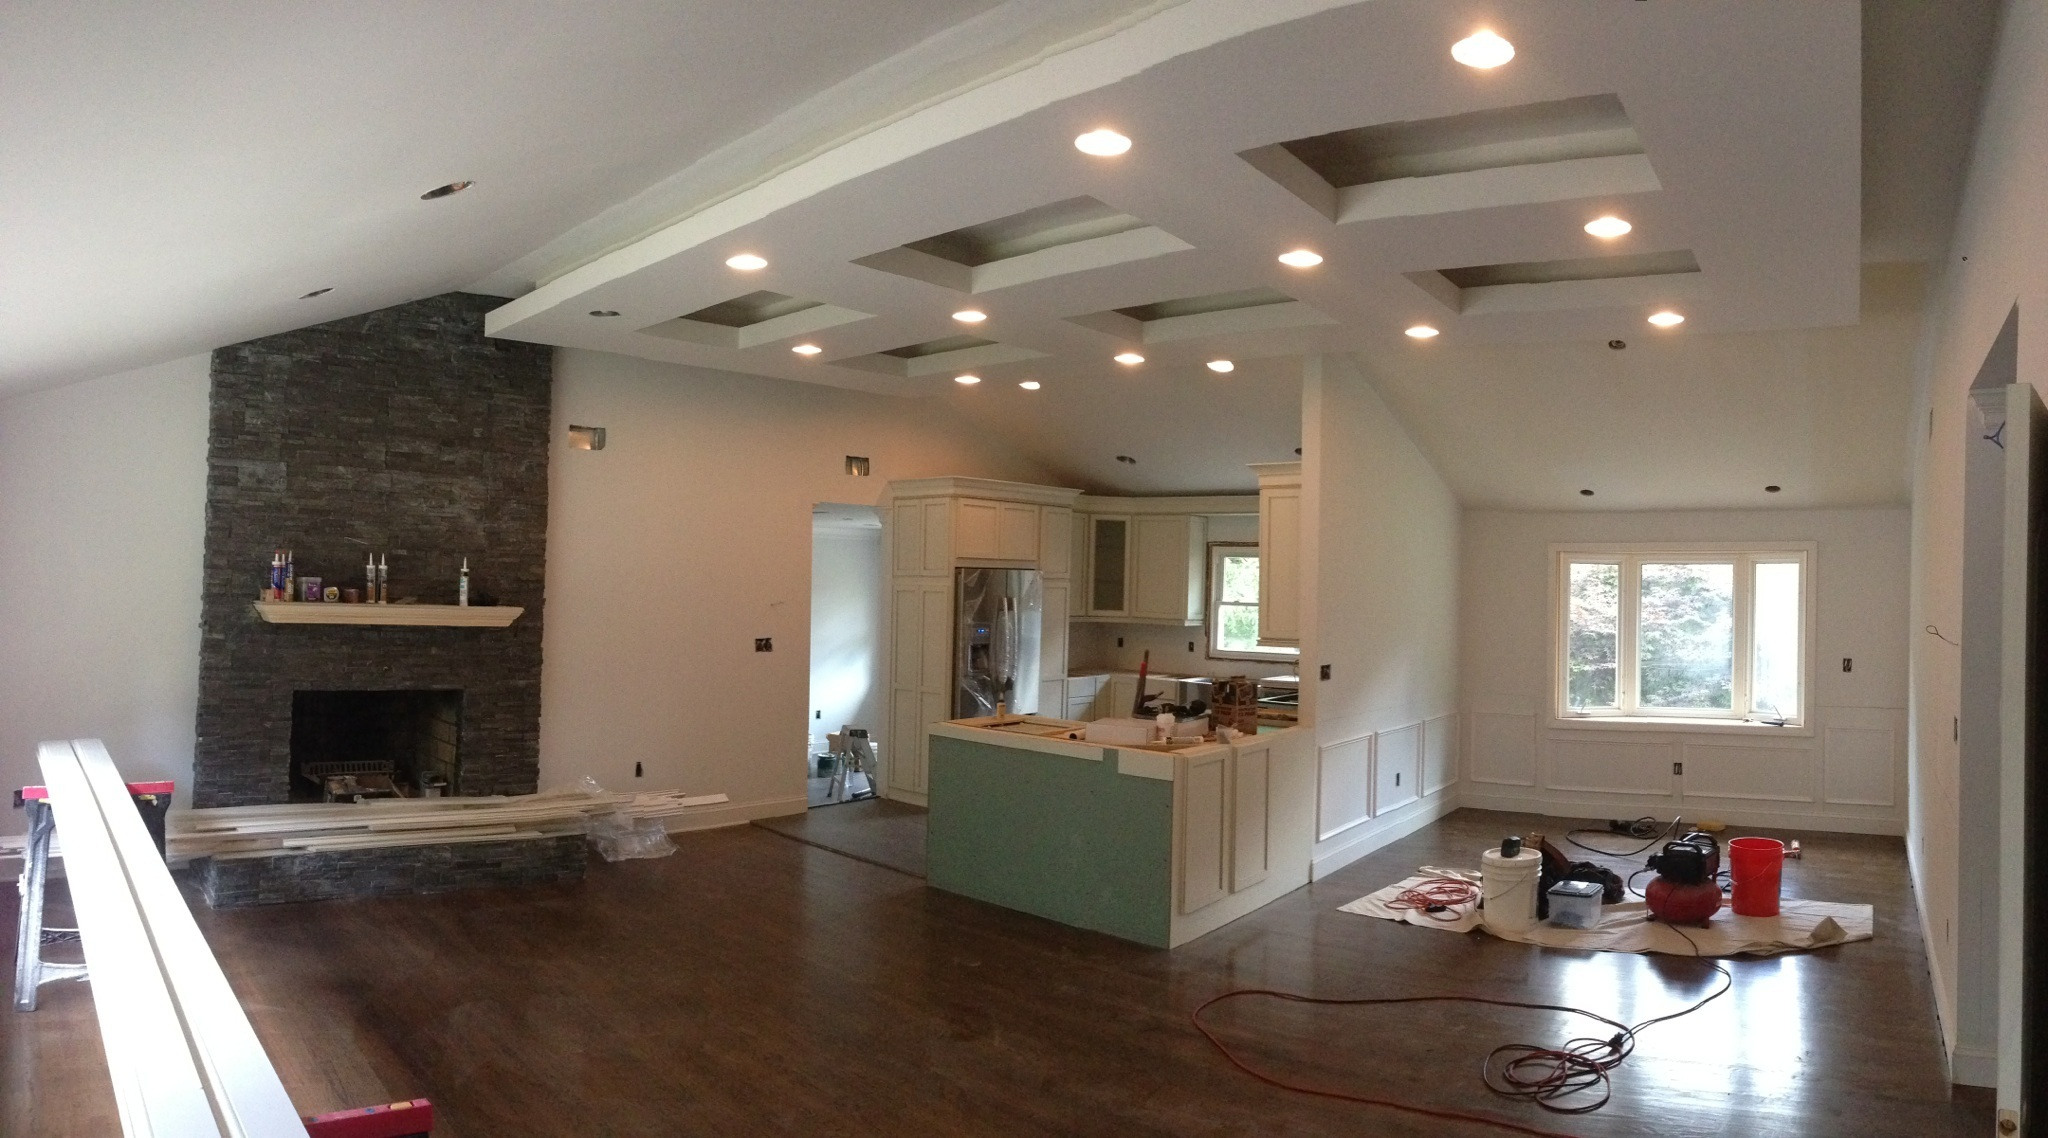 Bakersfield Interior & Exterior Home Painters | Superior Roofing on house exterior, house paint schemes, house crafts, house photoshop, house watercolor, house bed, house people, house painter, house family, house design, house orange, house colors, house painting, house drawing, house artwork, house construction,